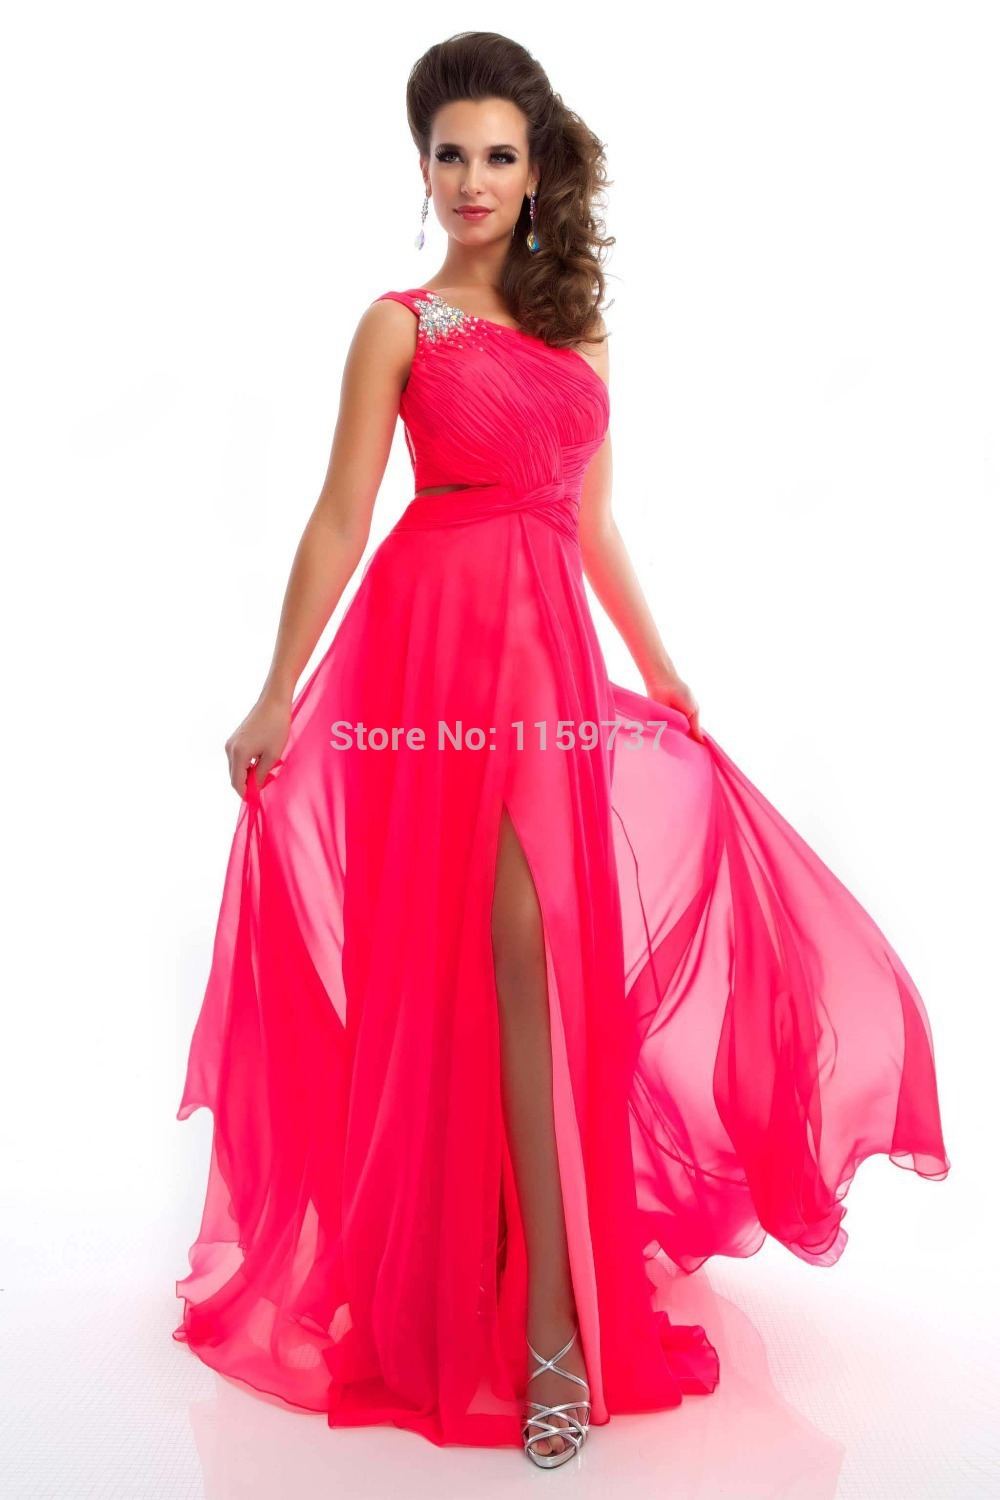 Local Prom Dress Stores